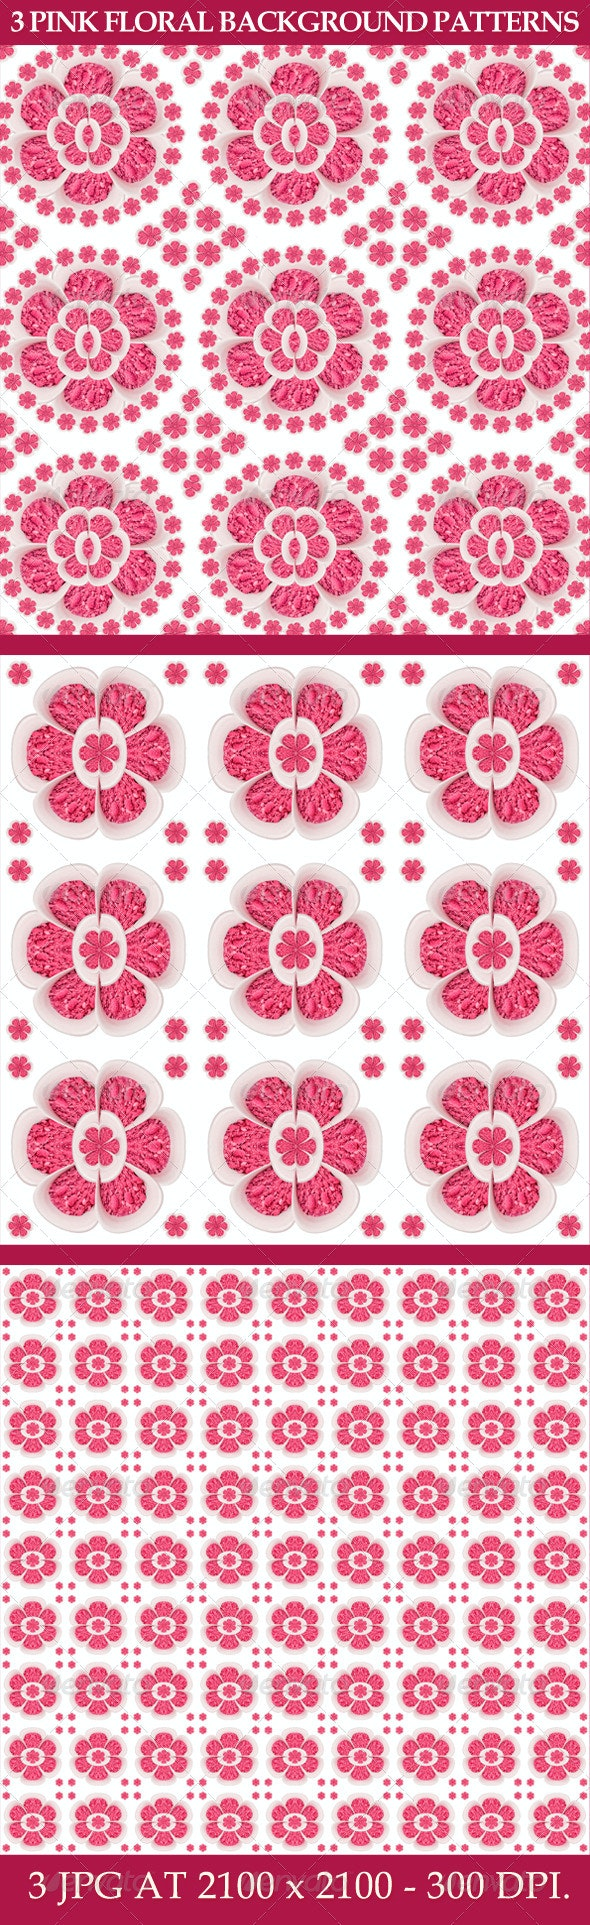 3 Pink Floral Background Patterns By Rudimencial Graphicriver